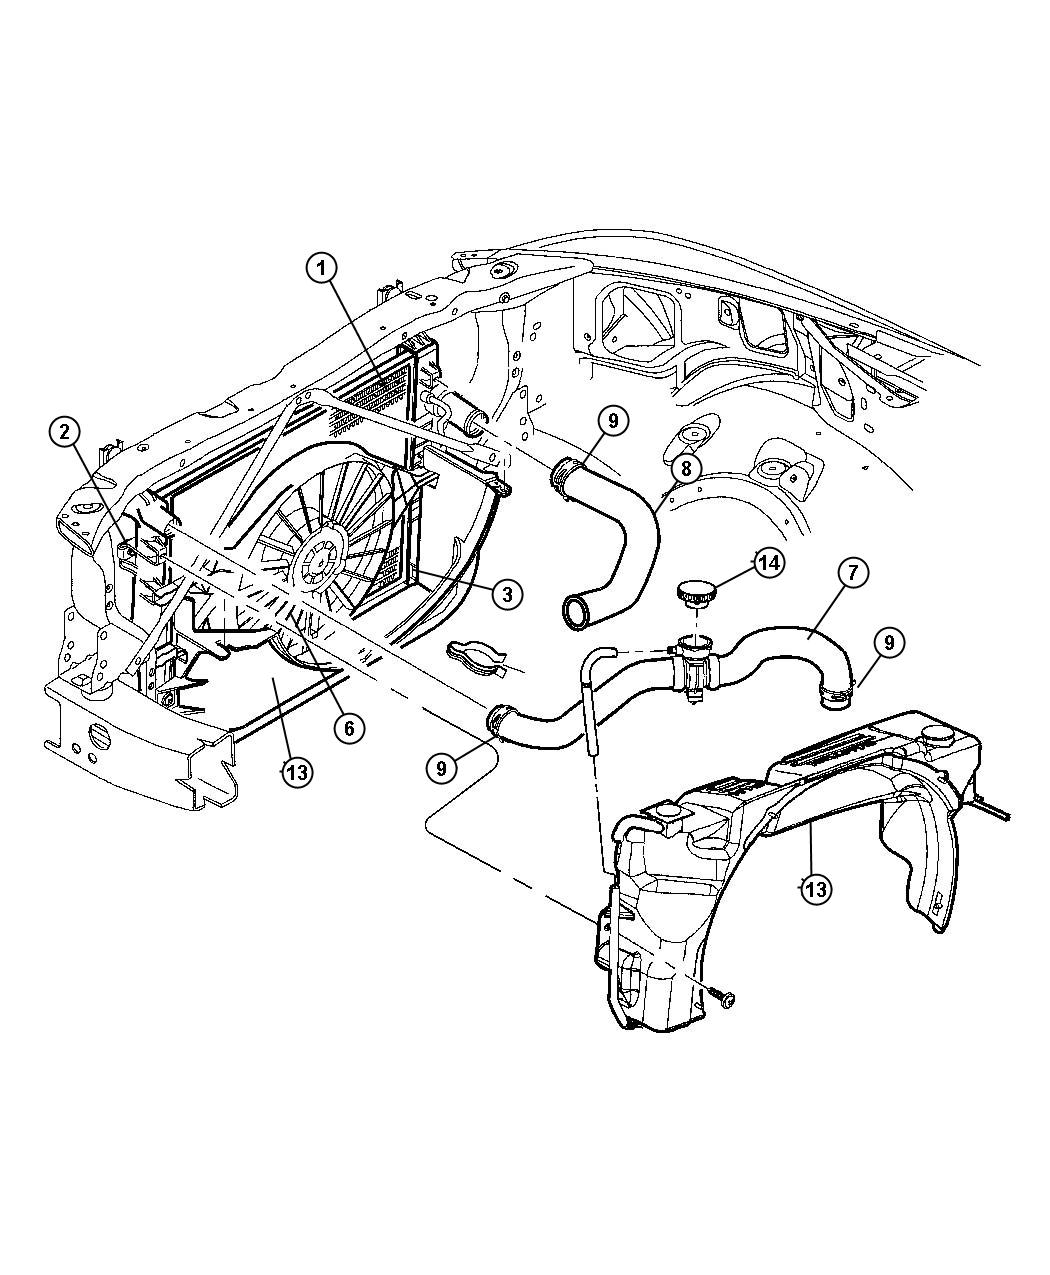 Dodge Dakota Oxygen Sensor Wiring Diagram